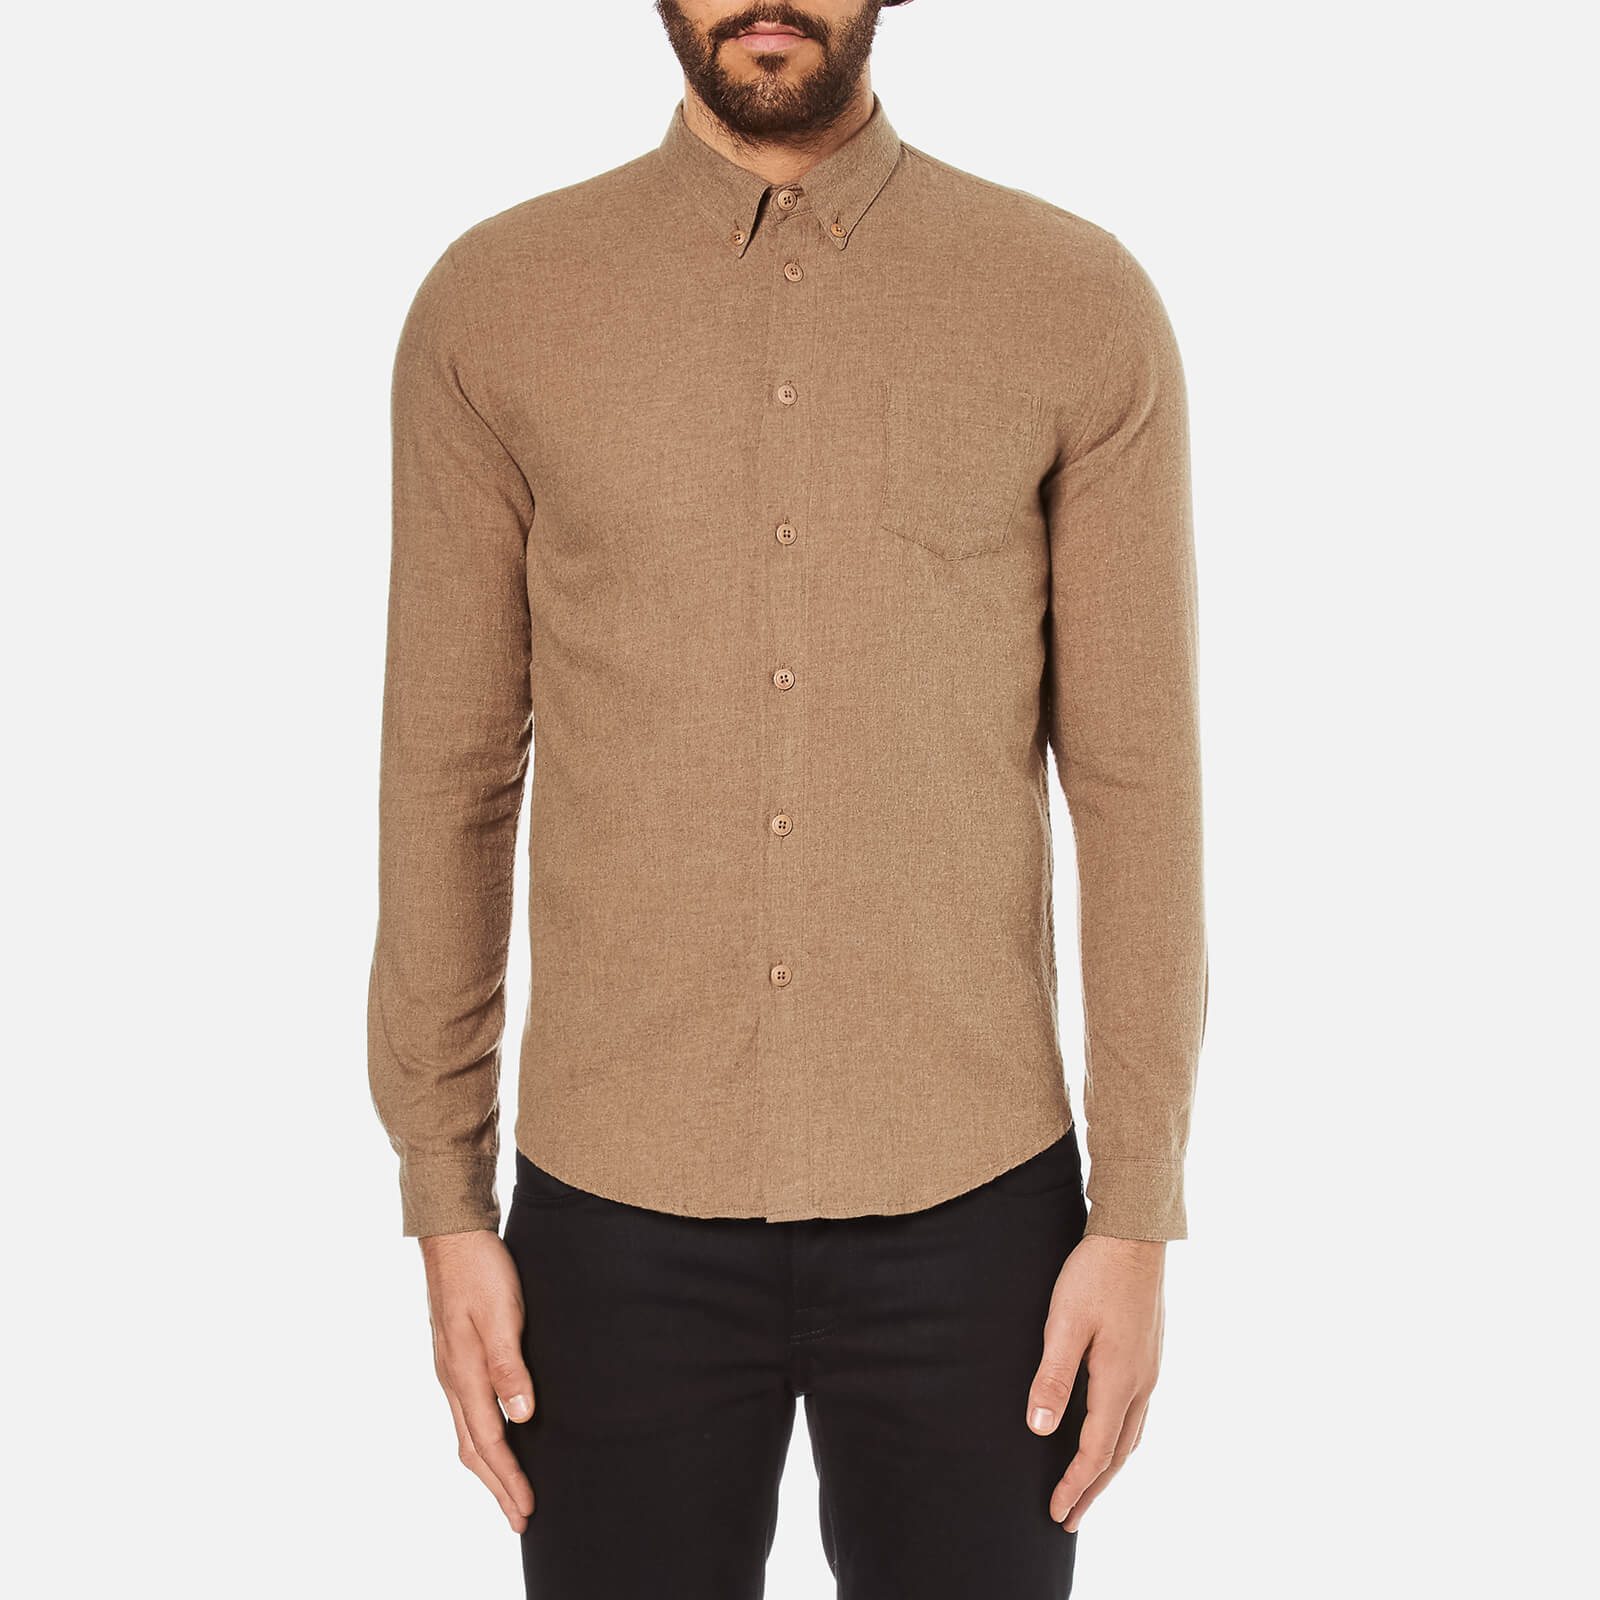 2f144e27a883bb Folk Men's Button Down Long Sleeve Shirt - Sand - Free UK Delivery over £50